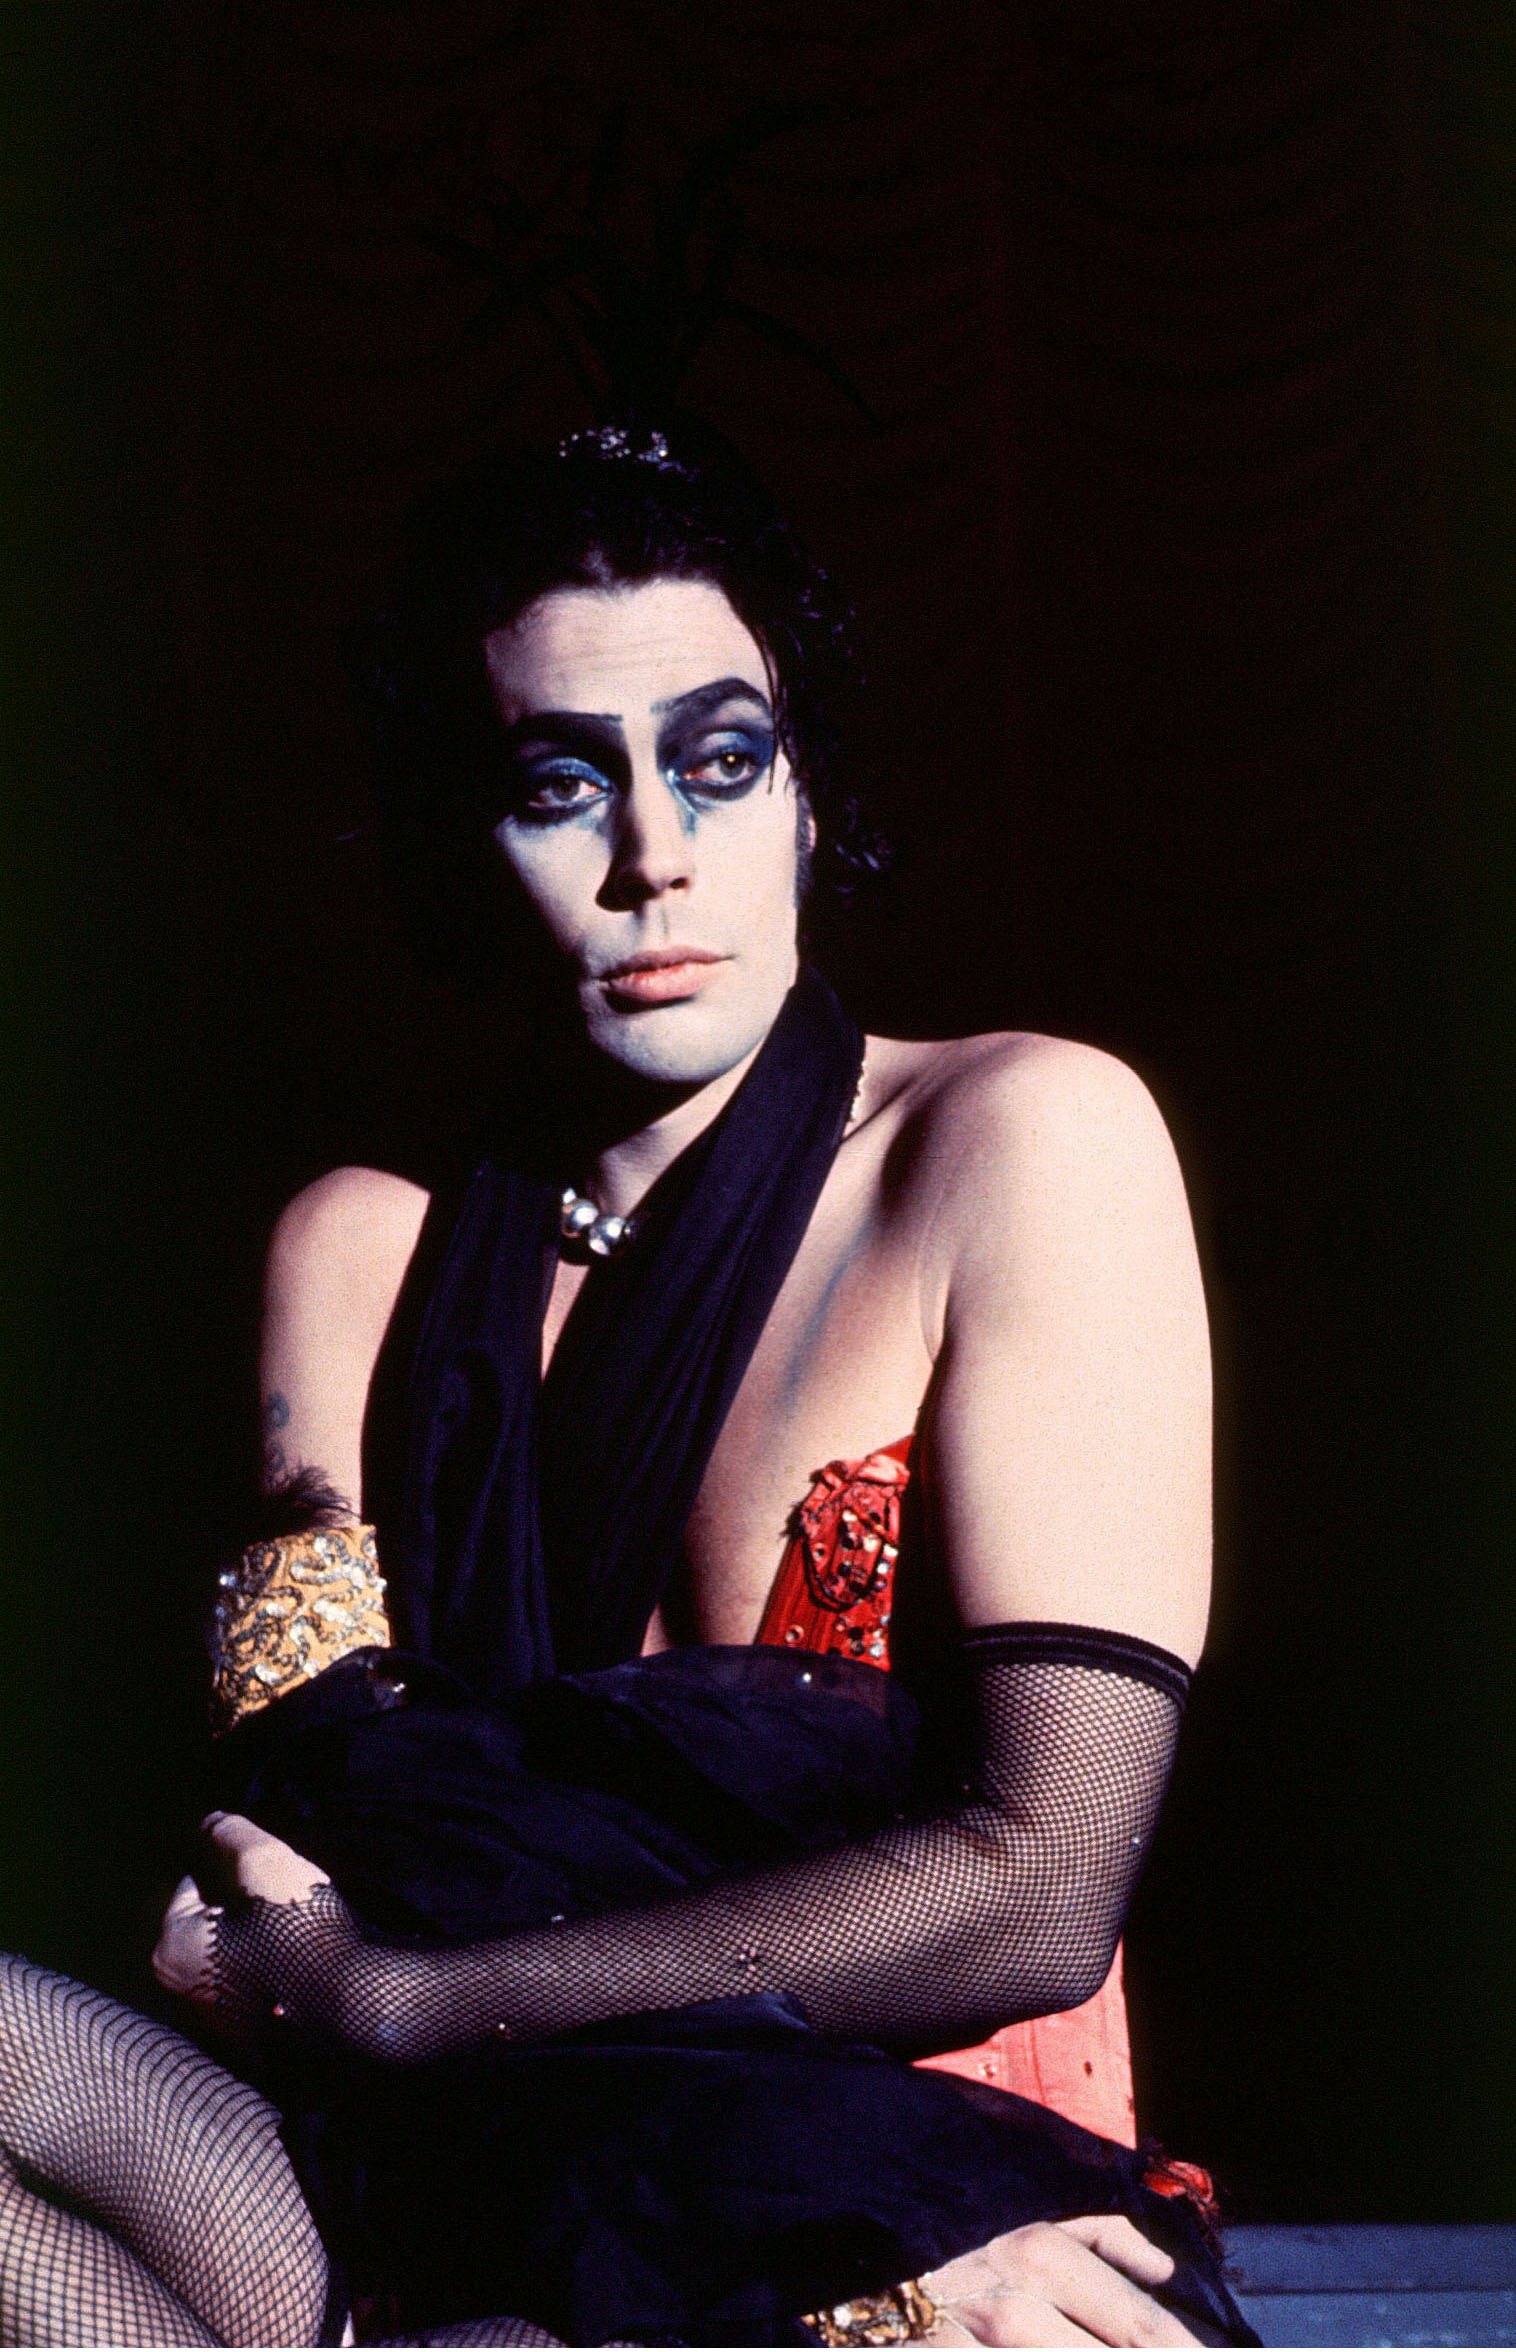 rocky horror picture show The official fan website for the 1975 film the rocky horror picture show.